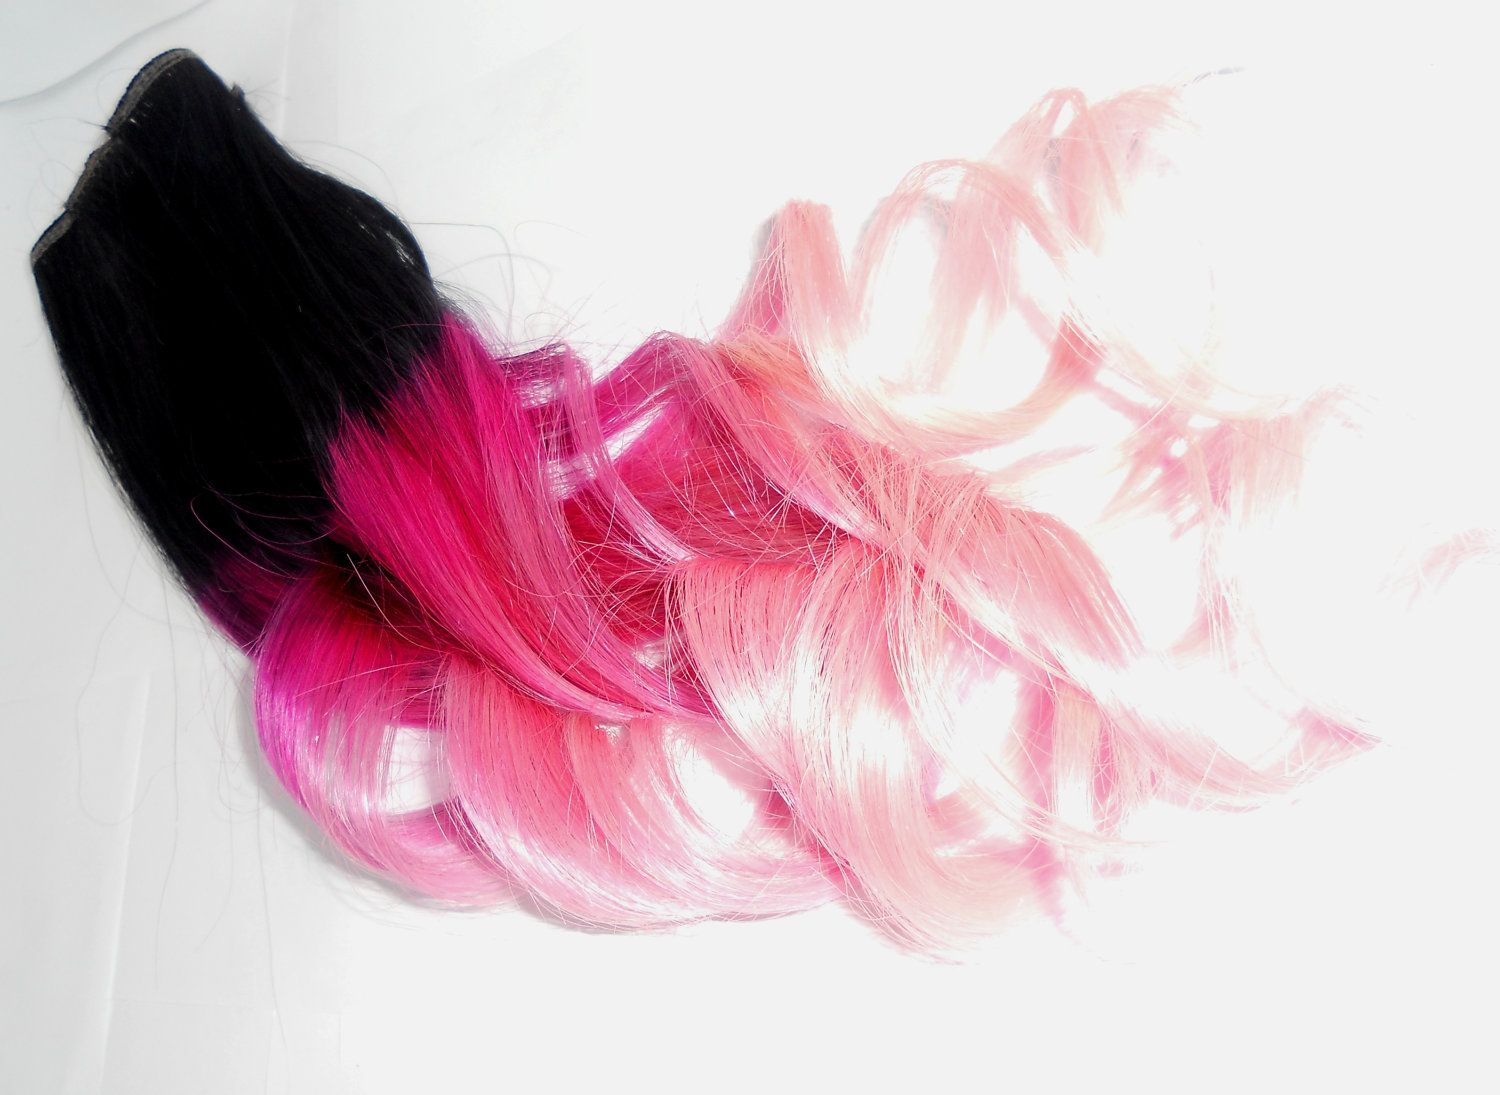 Black to Dark Pink/Pastel Pink Ombre Hair Extension - Full ...